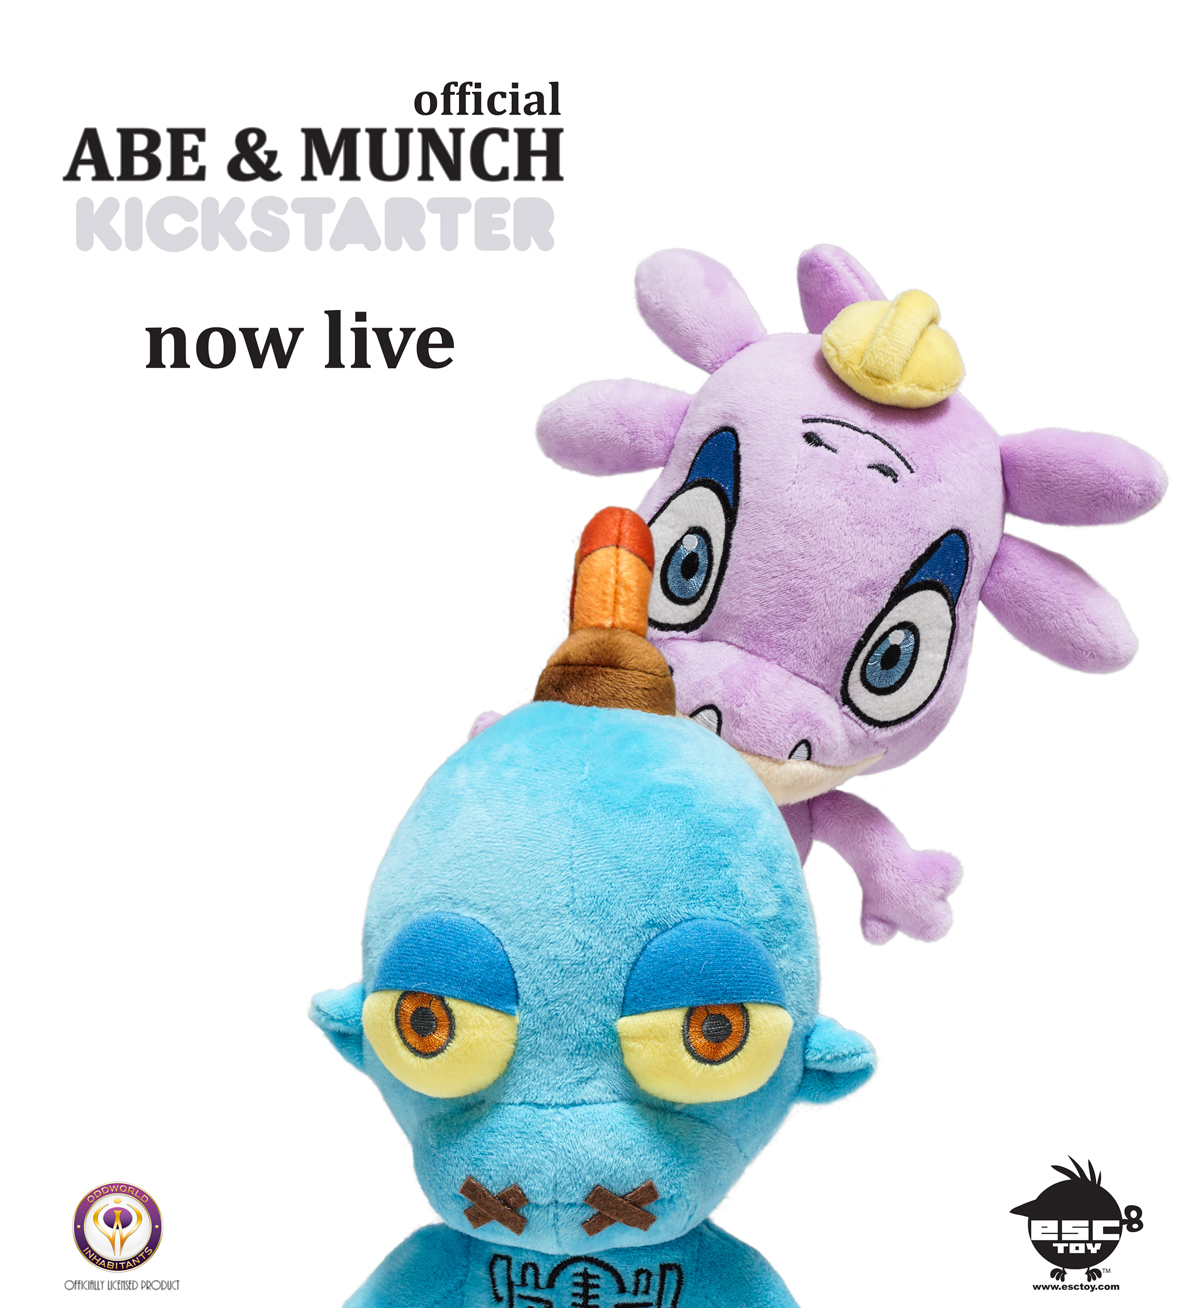 This is the first time that beloved Oddworld brand characters such as ABE & MUNCH are being presented as collectible plush with a sound-chip function. With the blessing of ODDWORLD INC, ESC has now launched a Kickstarter to fund the initial production. Among ABE & MUNCH plush there are a limited edition items that are must haves ODDWORLD fans. Click here to visit the project-https://www.kickstarter.com/projects/731983185/oddworld-abe-and-munch-plush-project  Thank you for your support!